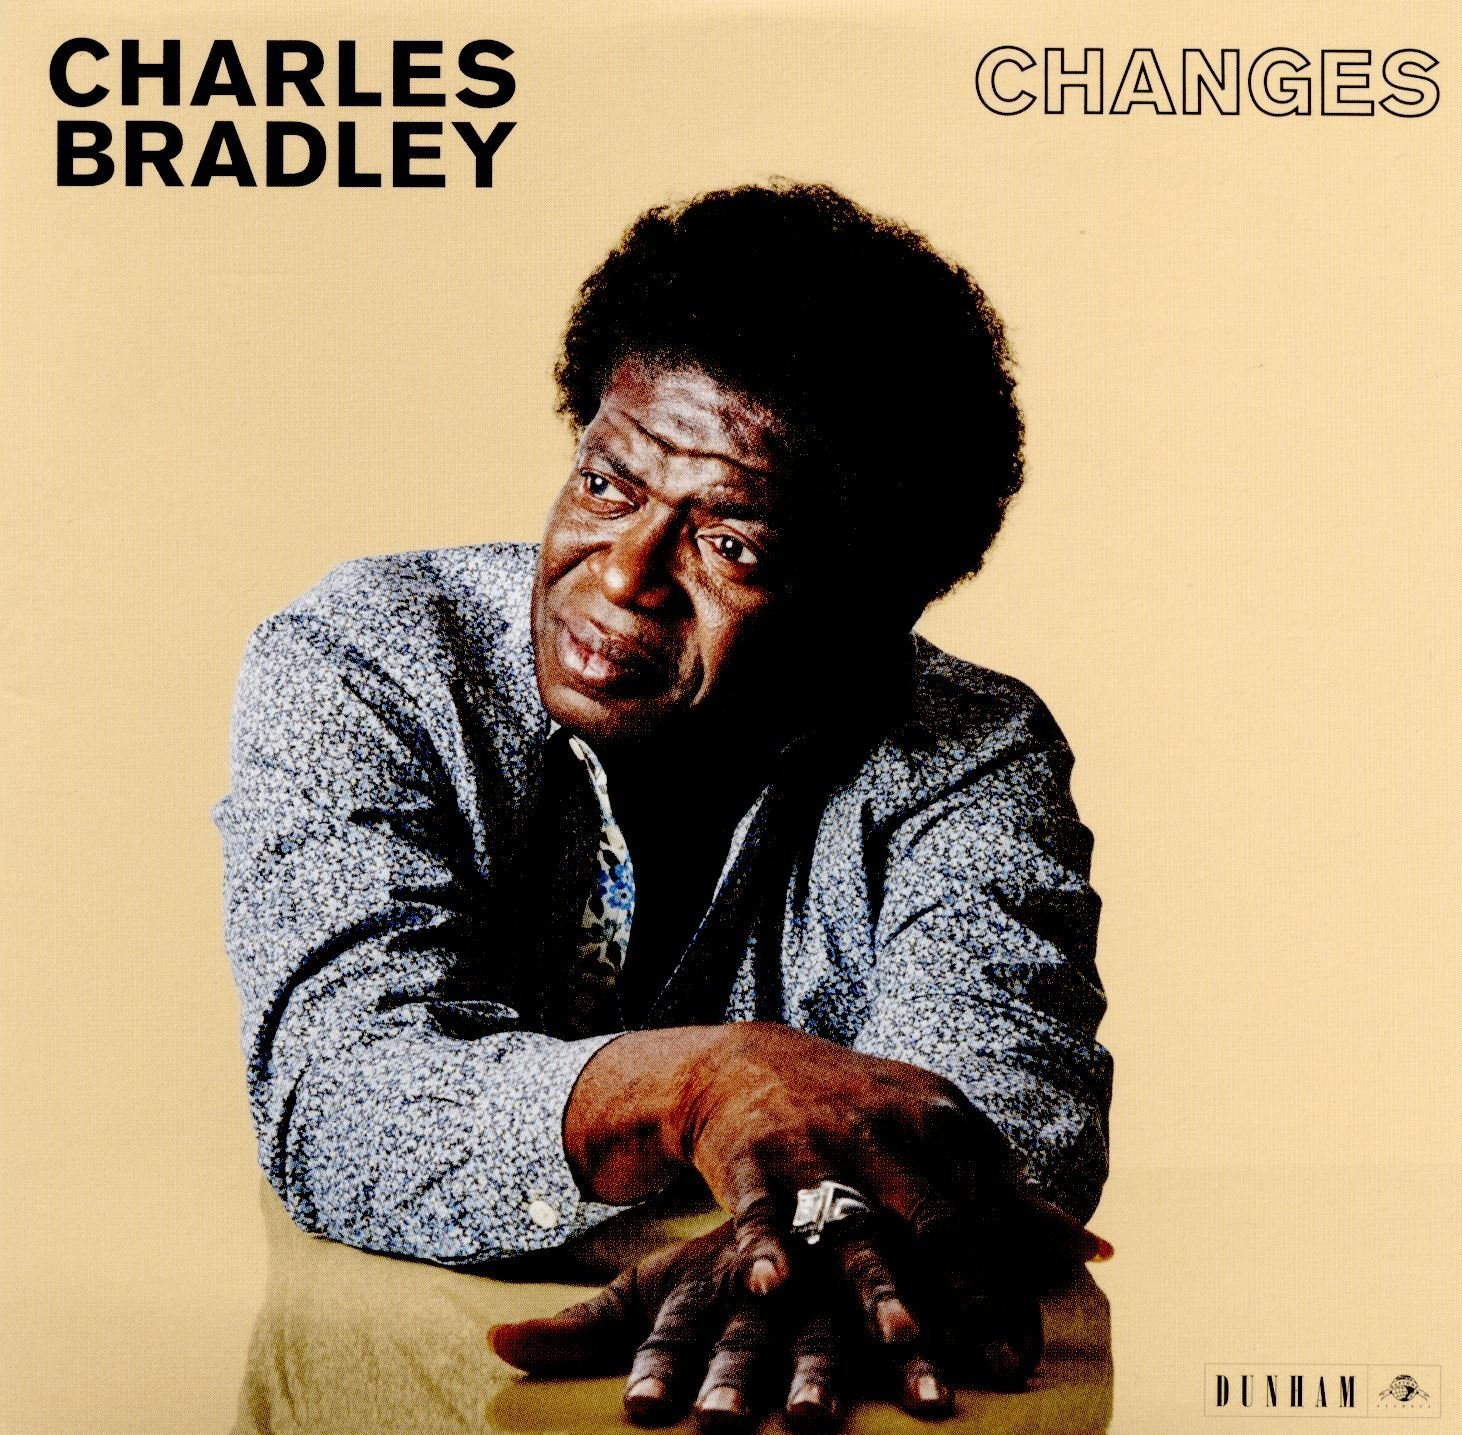 Charles Bradley: Changes [Album Review]